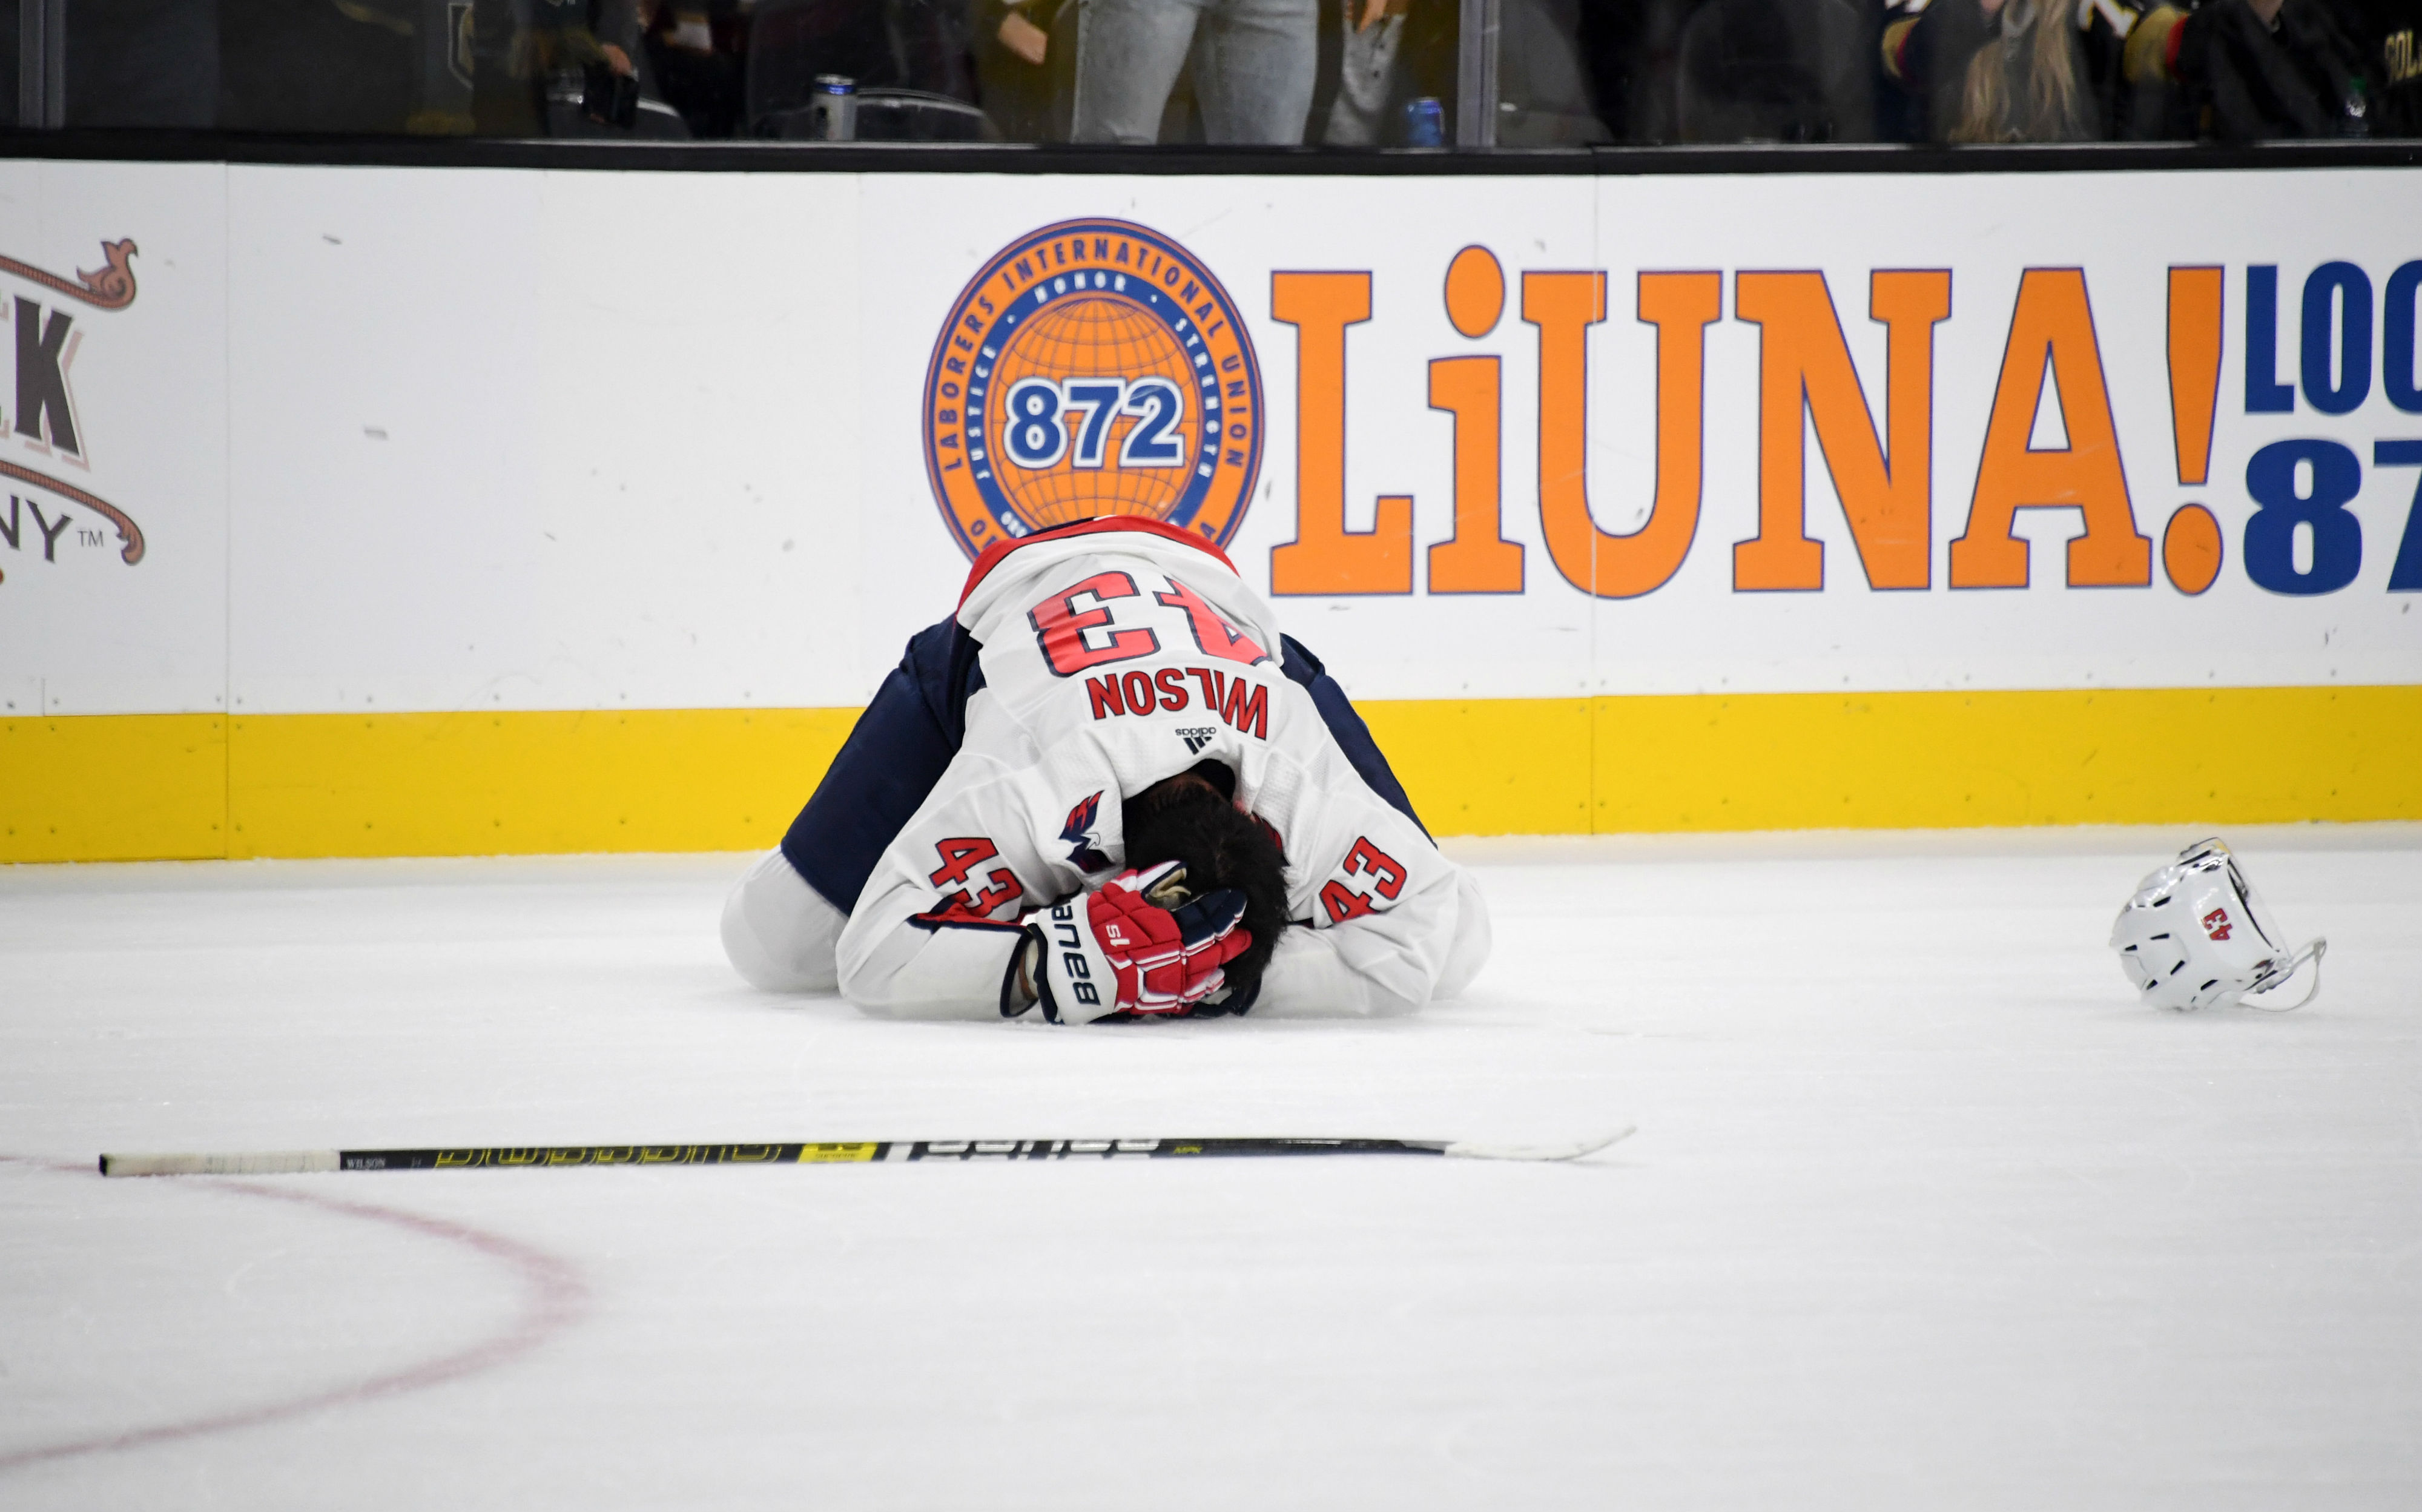 Capitals' Tom Wilson Leaves Game With Injury After Taking Big Hit; Golden Knights' Ryan Reaves Ejected